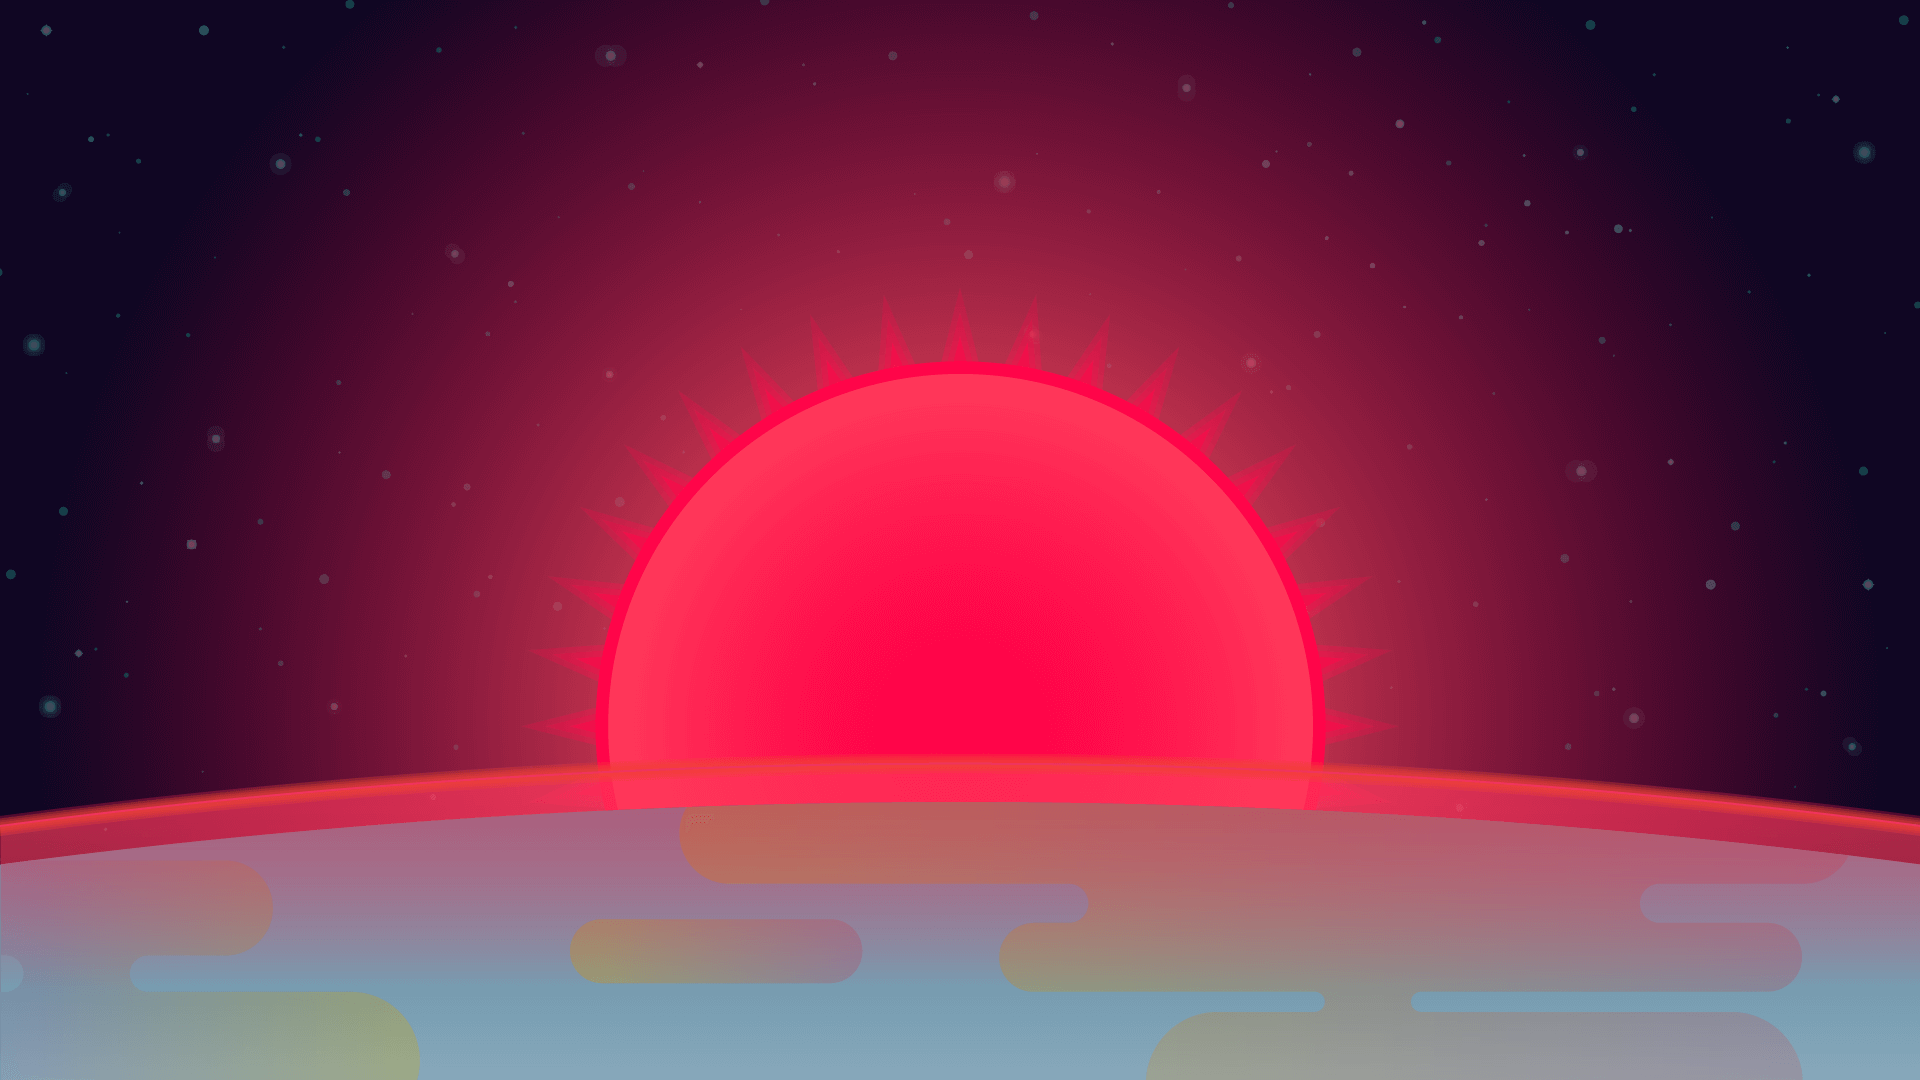 060_Website Project Red Dwarfs_Kurzgesagt Header